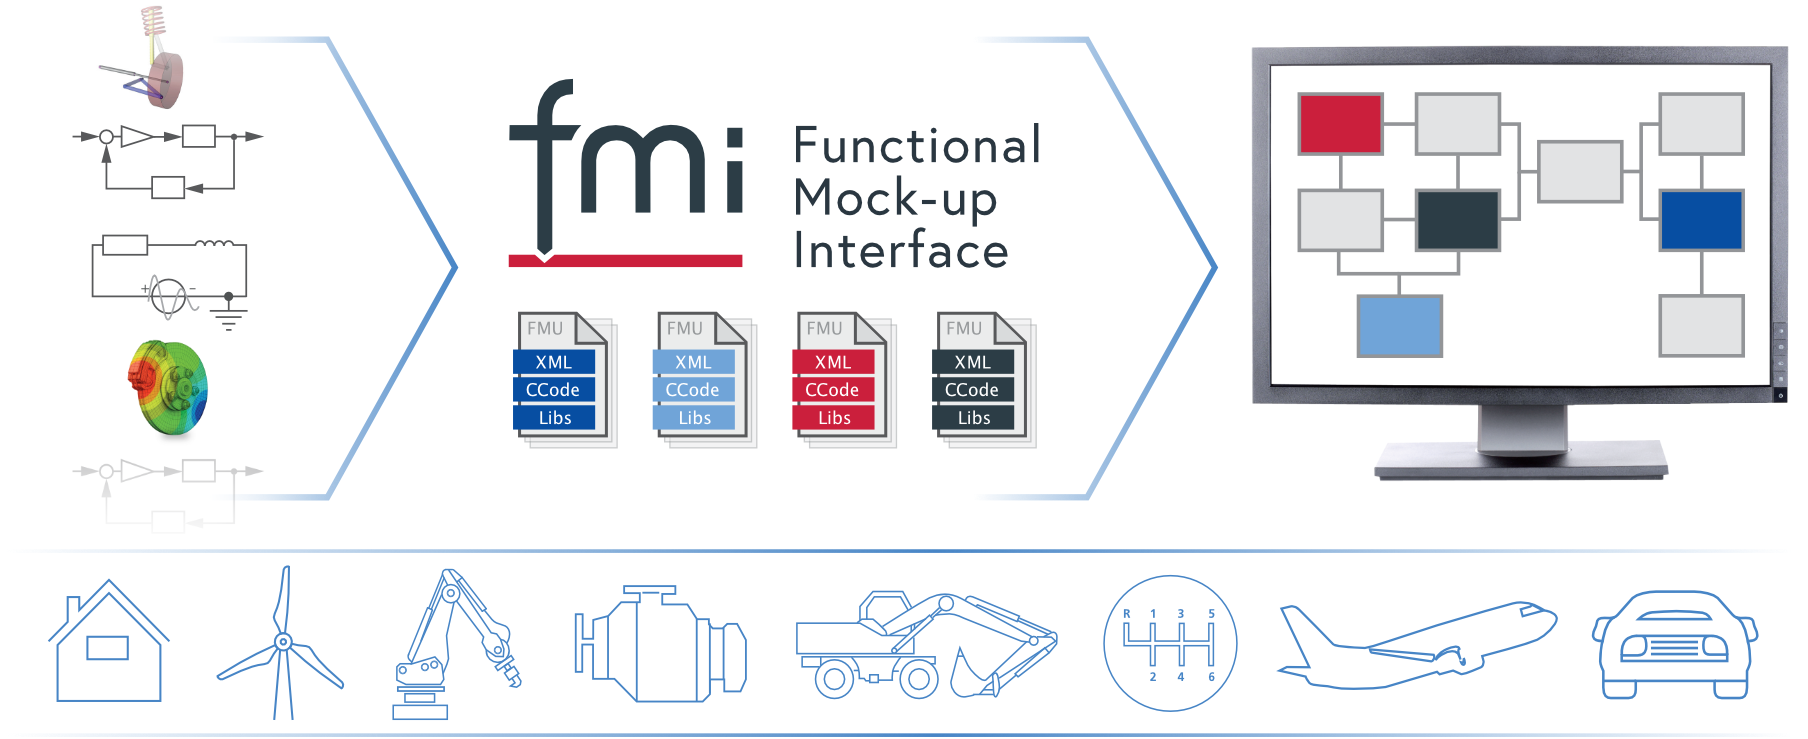 Functional Mock-up Interface illustration